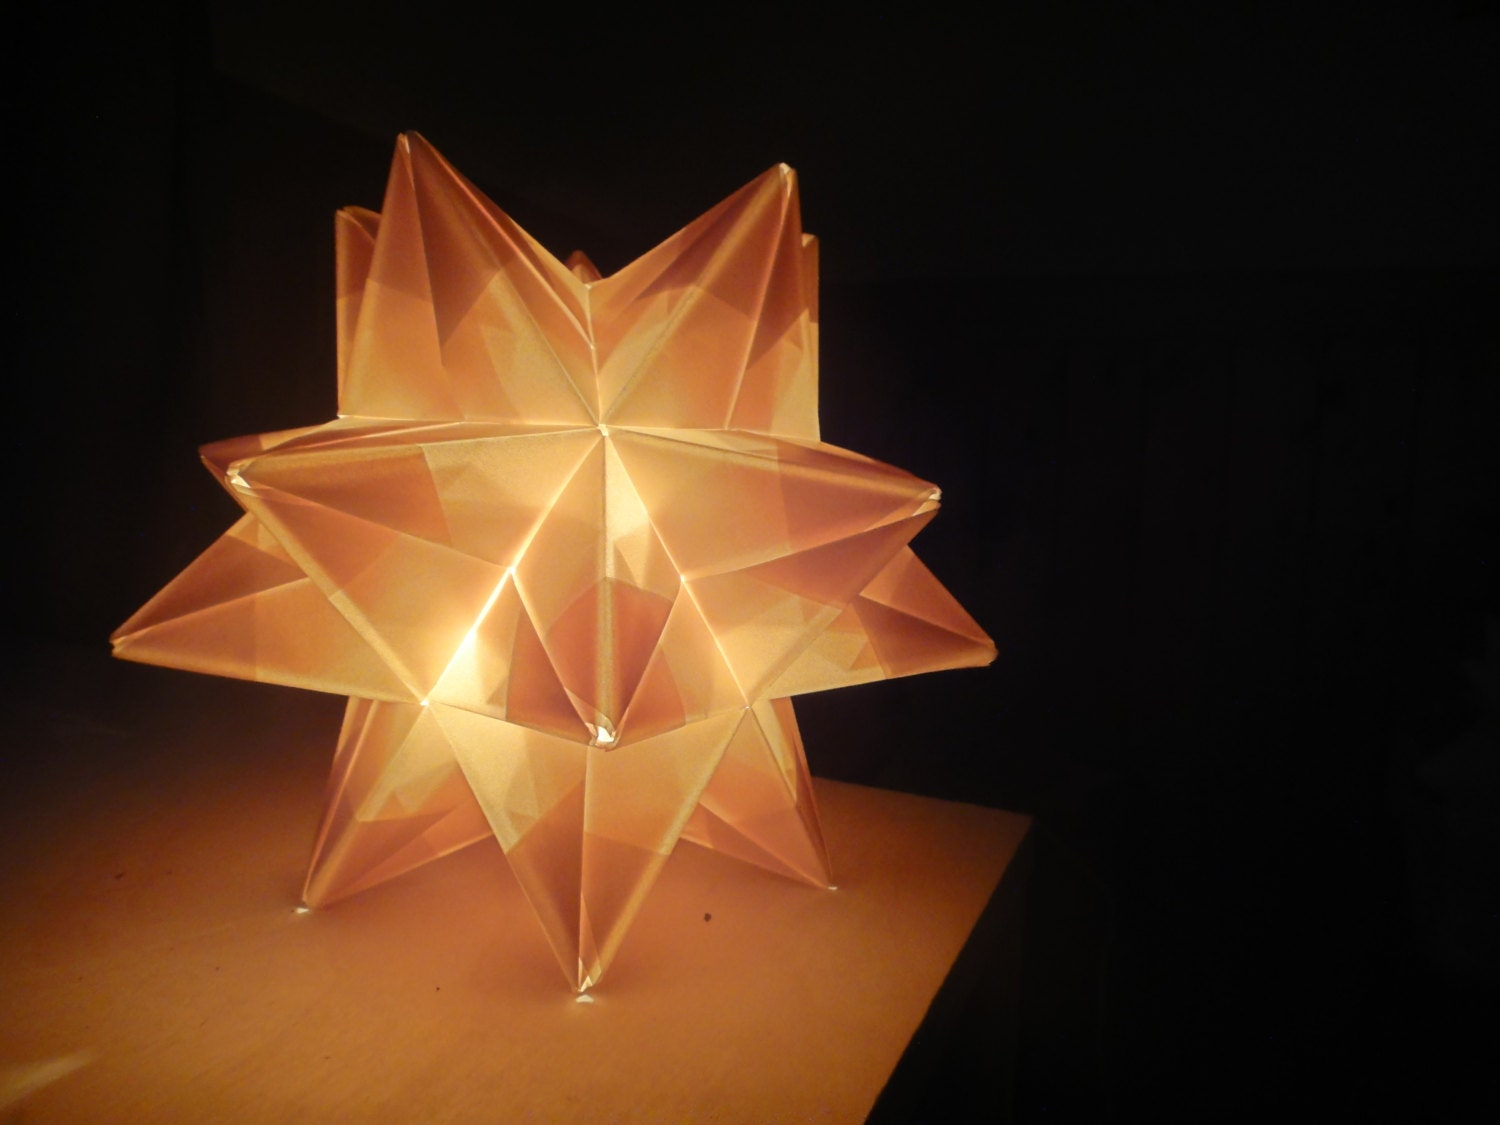 metallic gold origami paper modular star lamp handmade in